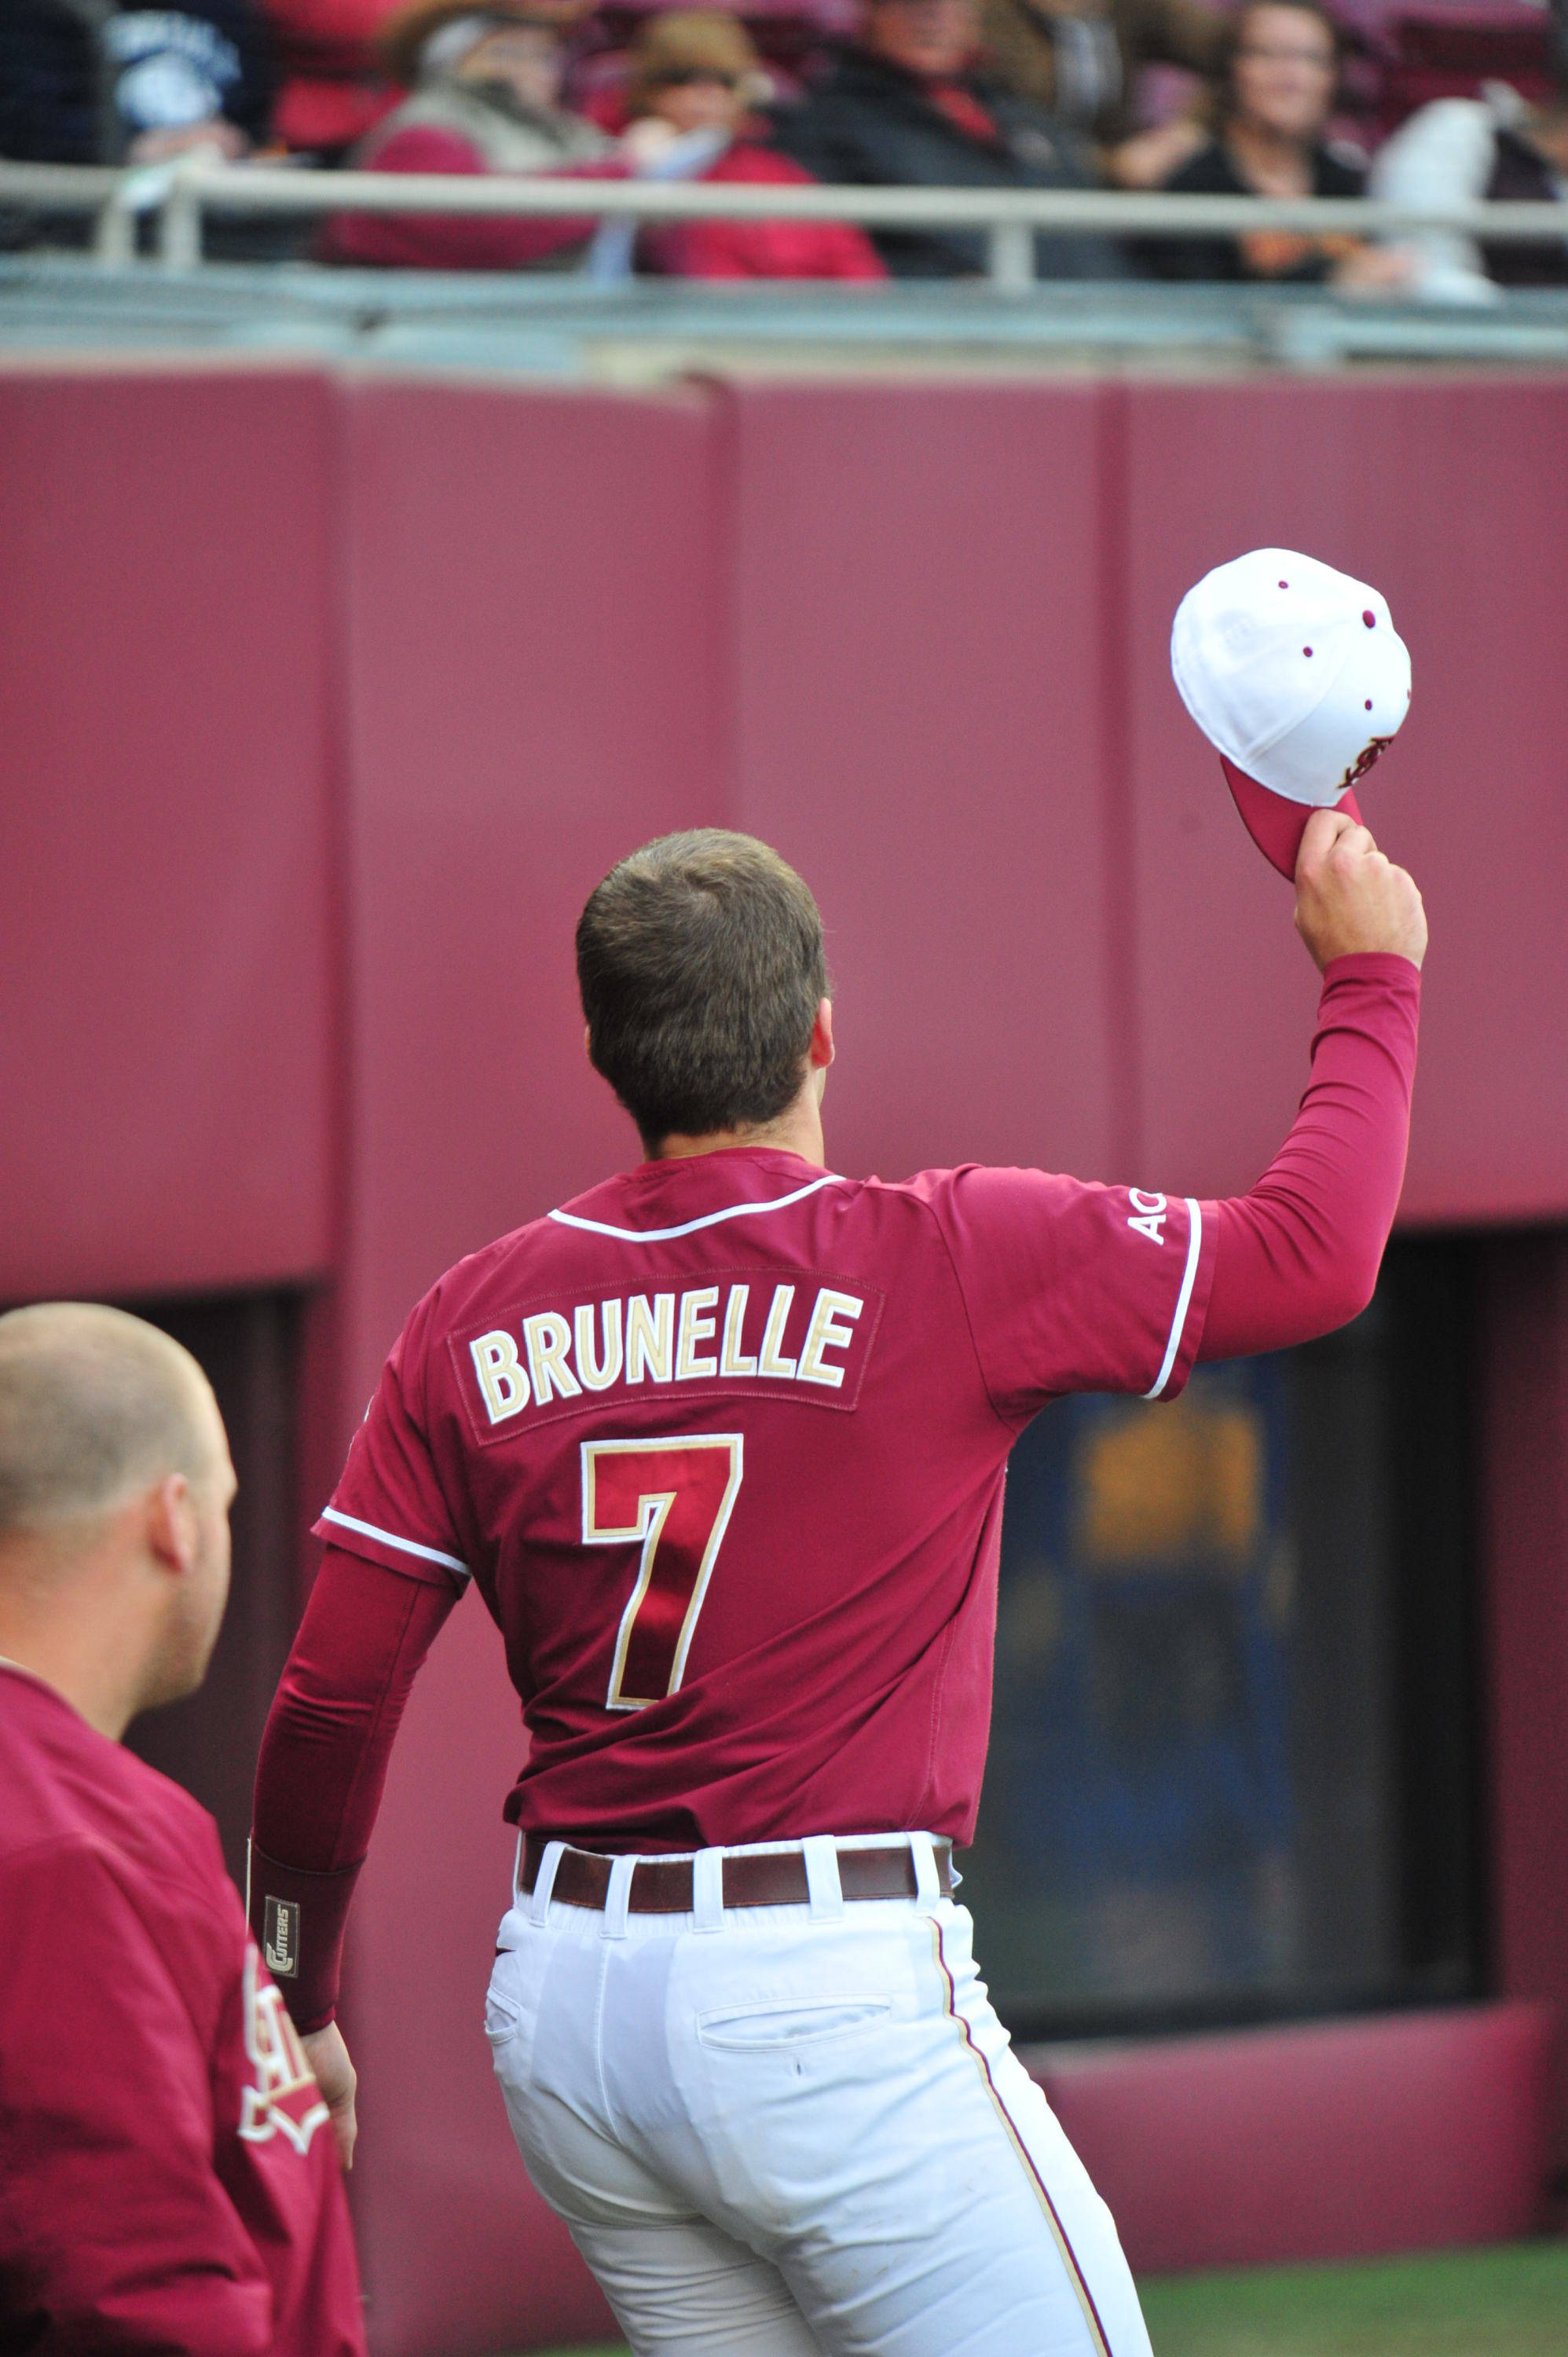 Parker Brunelle acknowledges the ground after hitting his first home run of the season.